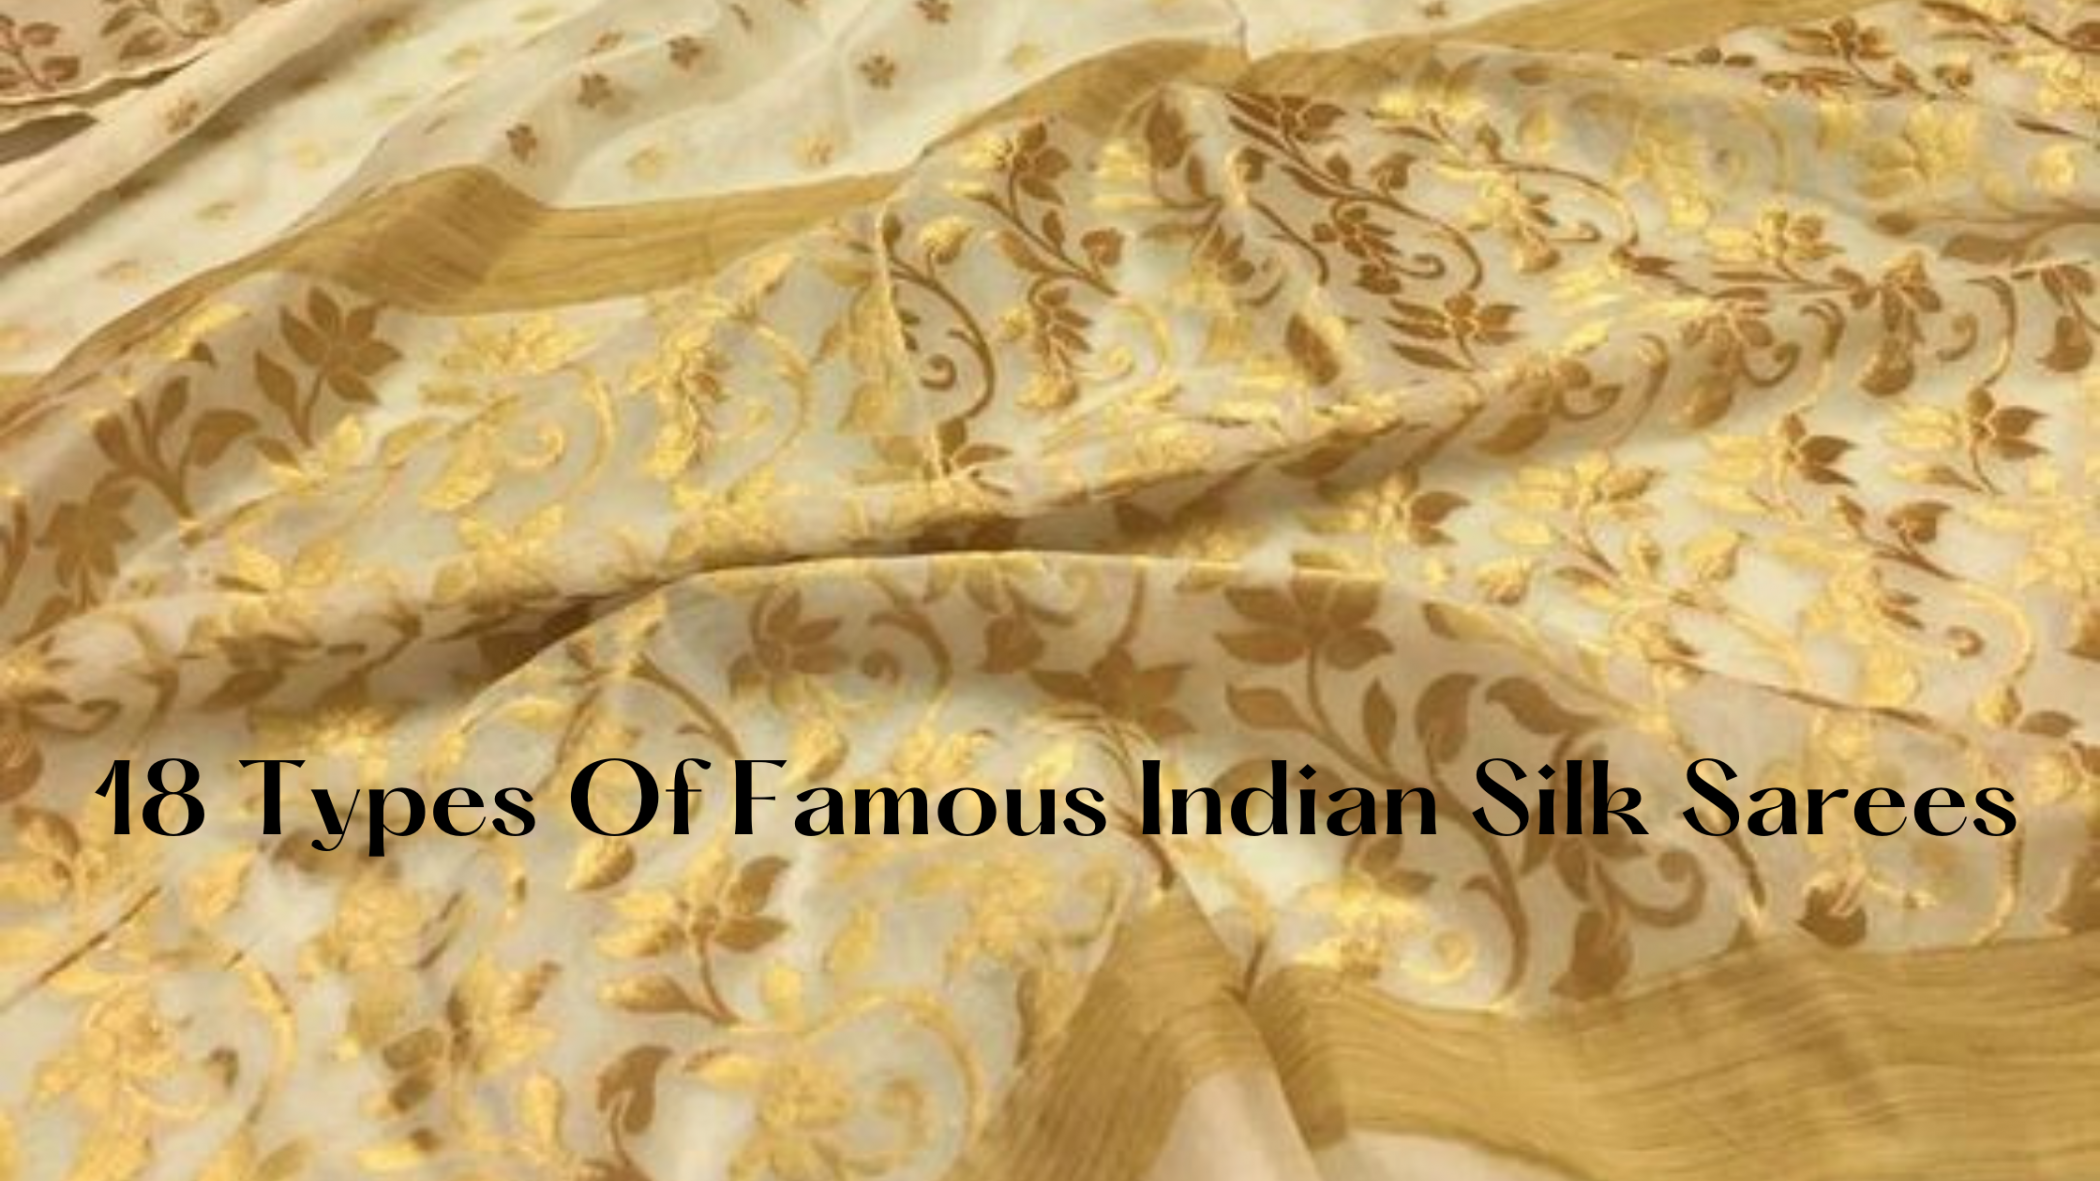 18 Types Of Famous Indian Silk Sarees